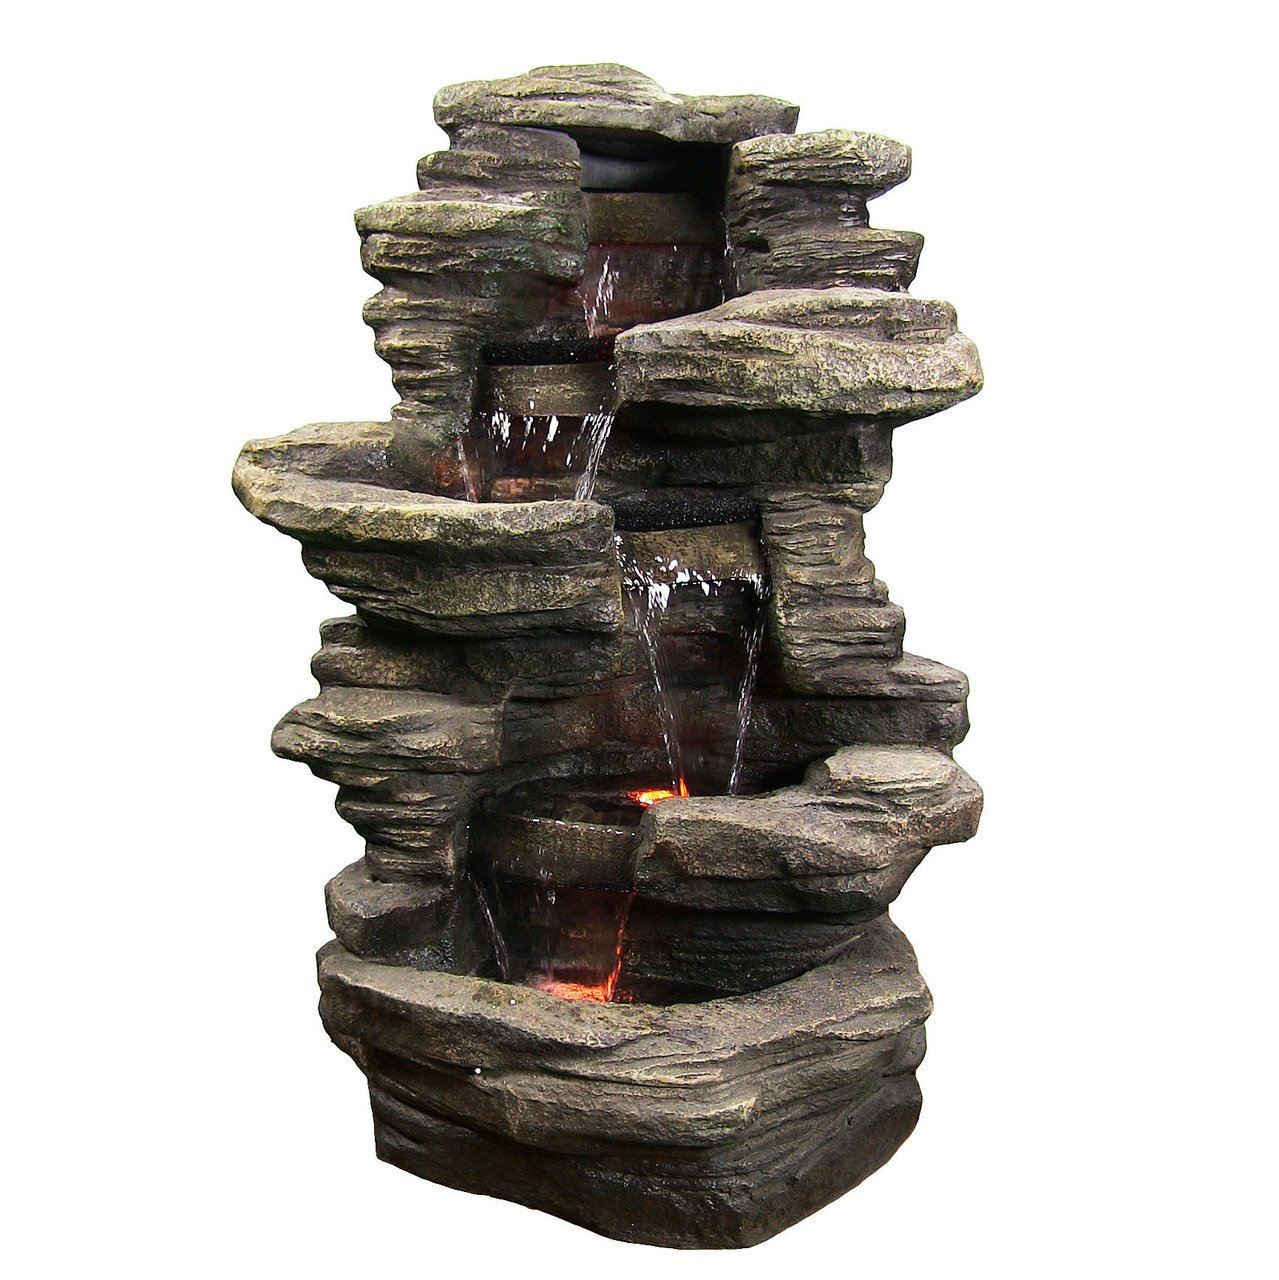 Amazon.com : Sunnydaze Stacked Shale Electric Outdoor Waterfall With LED  Lights, 38 Inch : Patio, Lawn U0026 Garden